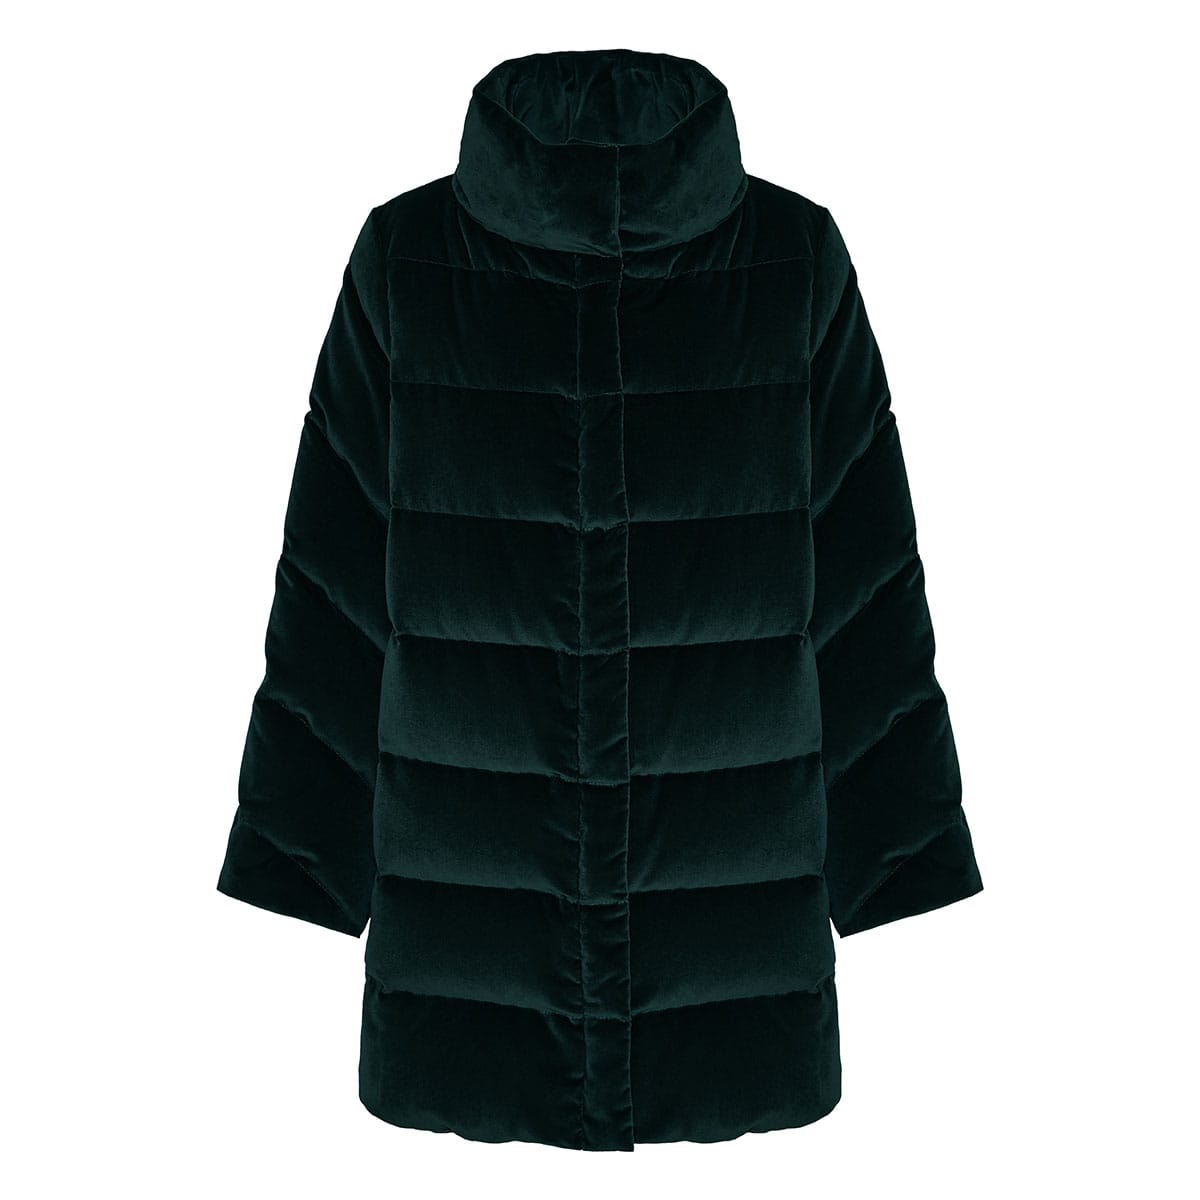 Down quilted velvet jacket